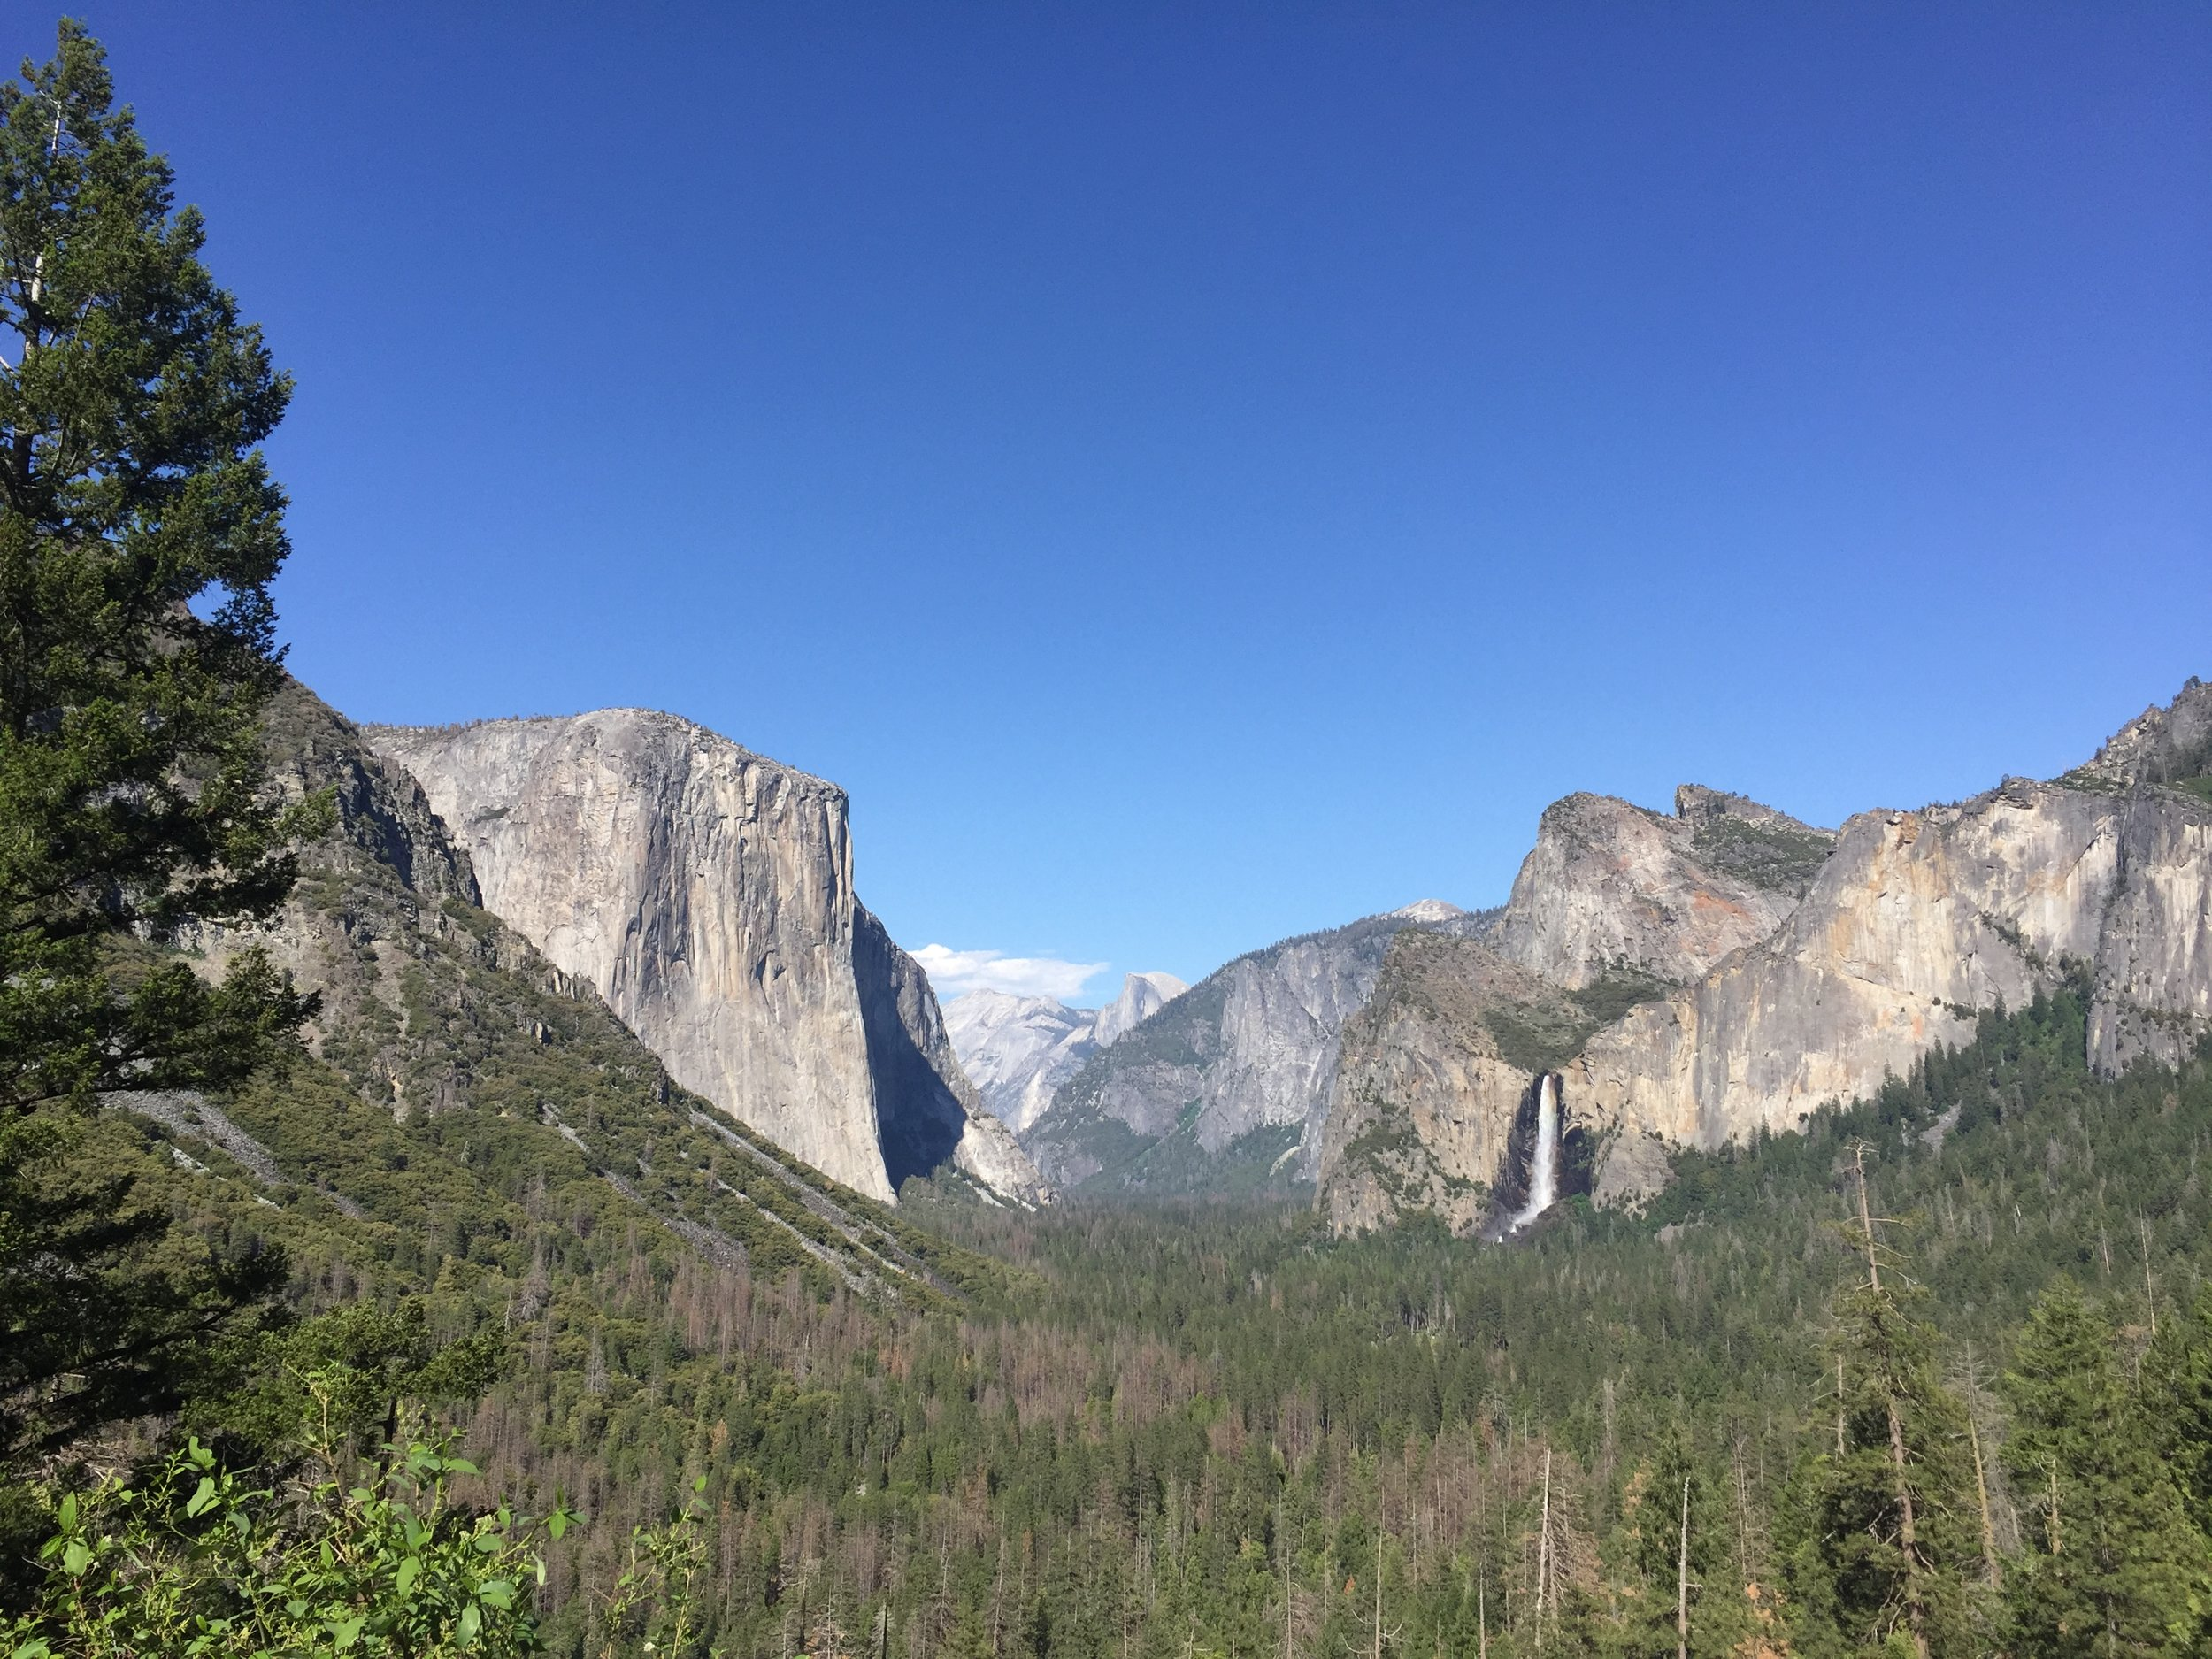 As a California native, it's really a shame I hadn't been here sooner, but I made it with family and friends who are like family. It was grand.